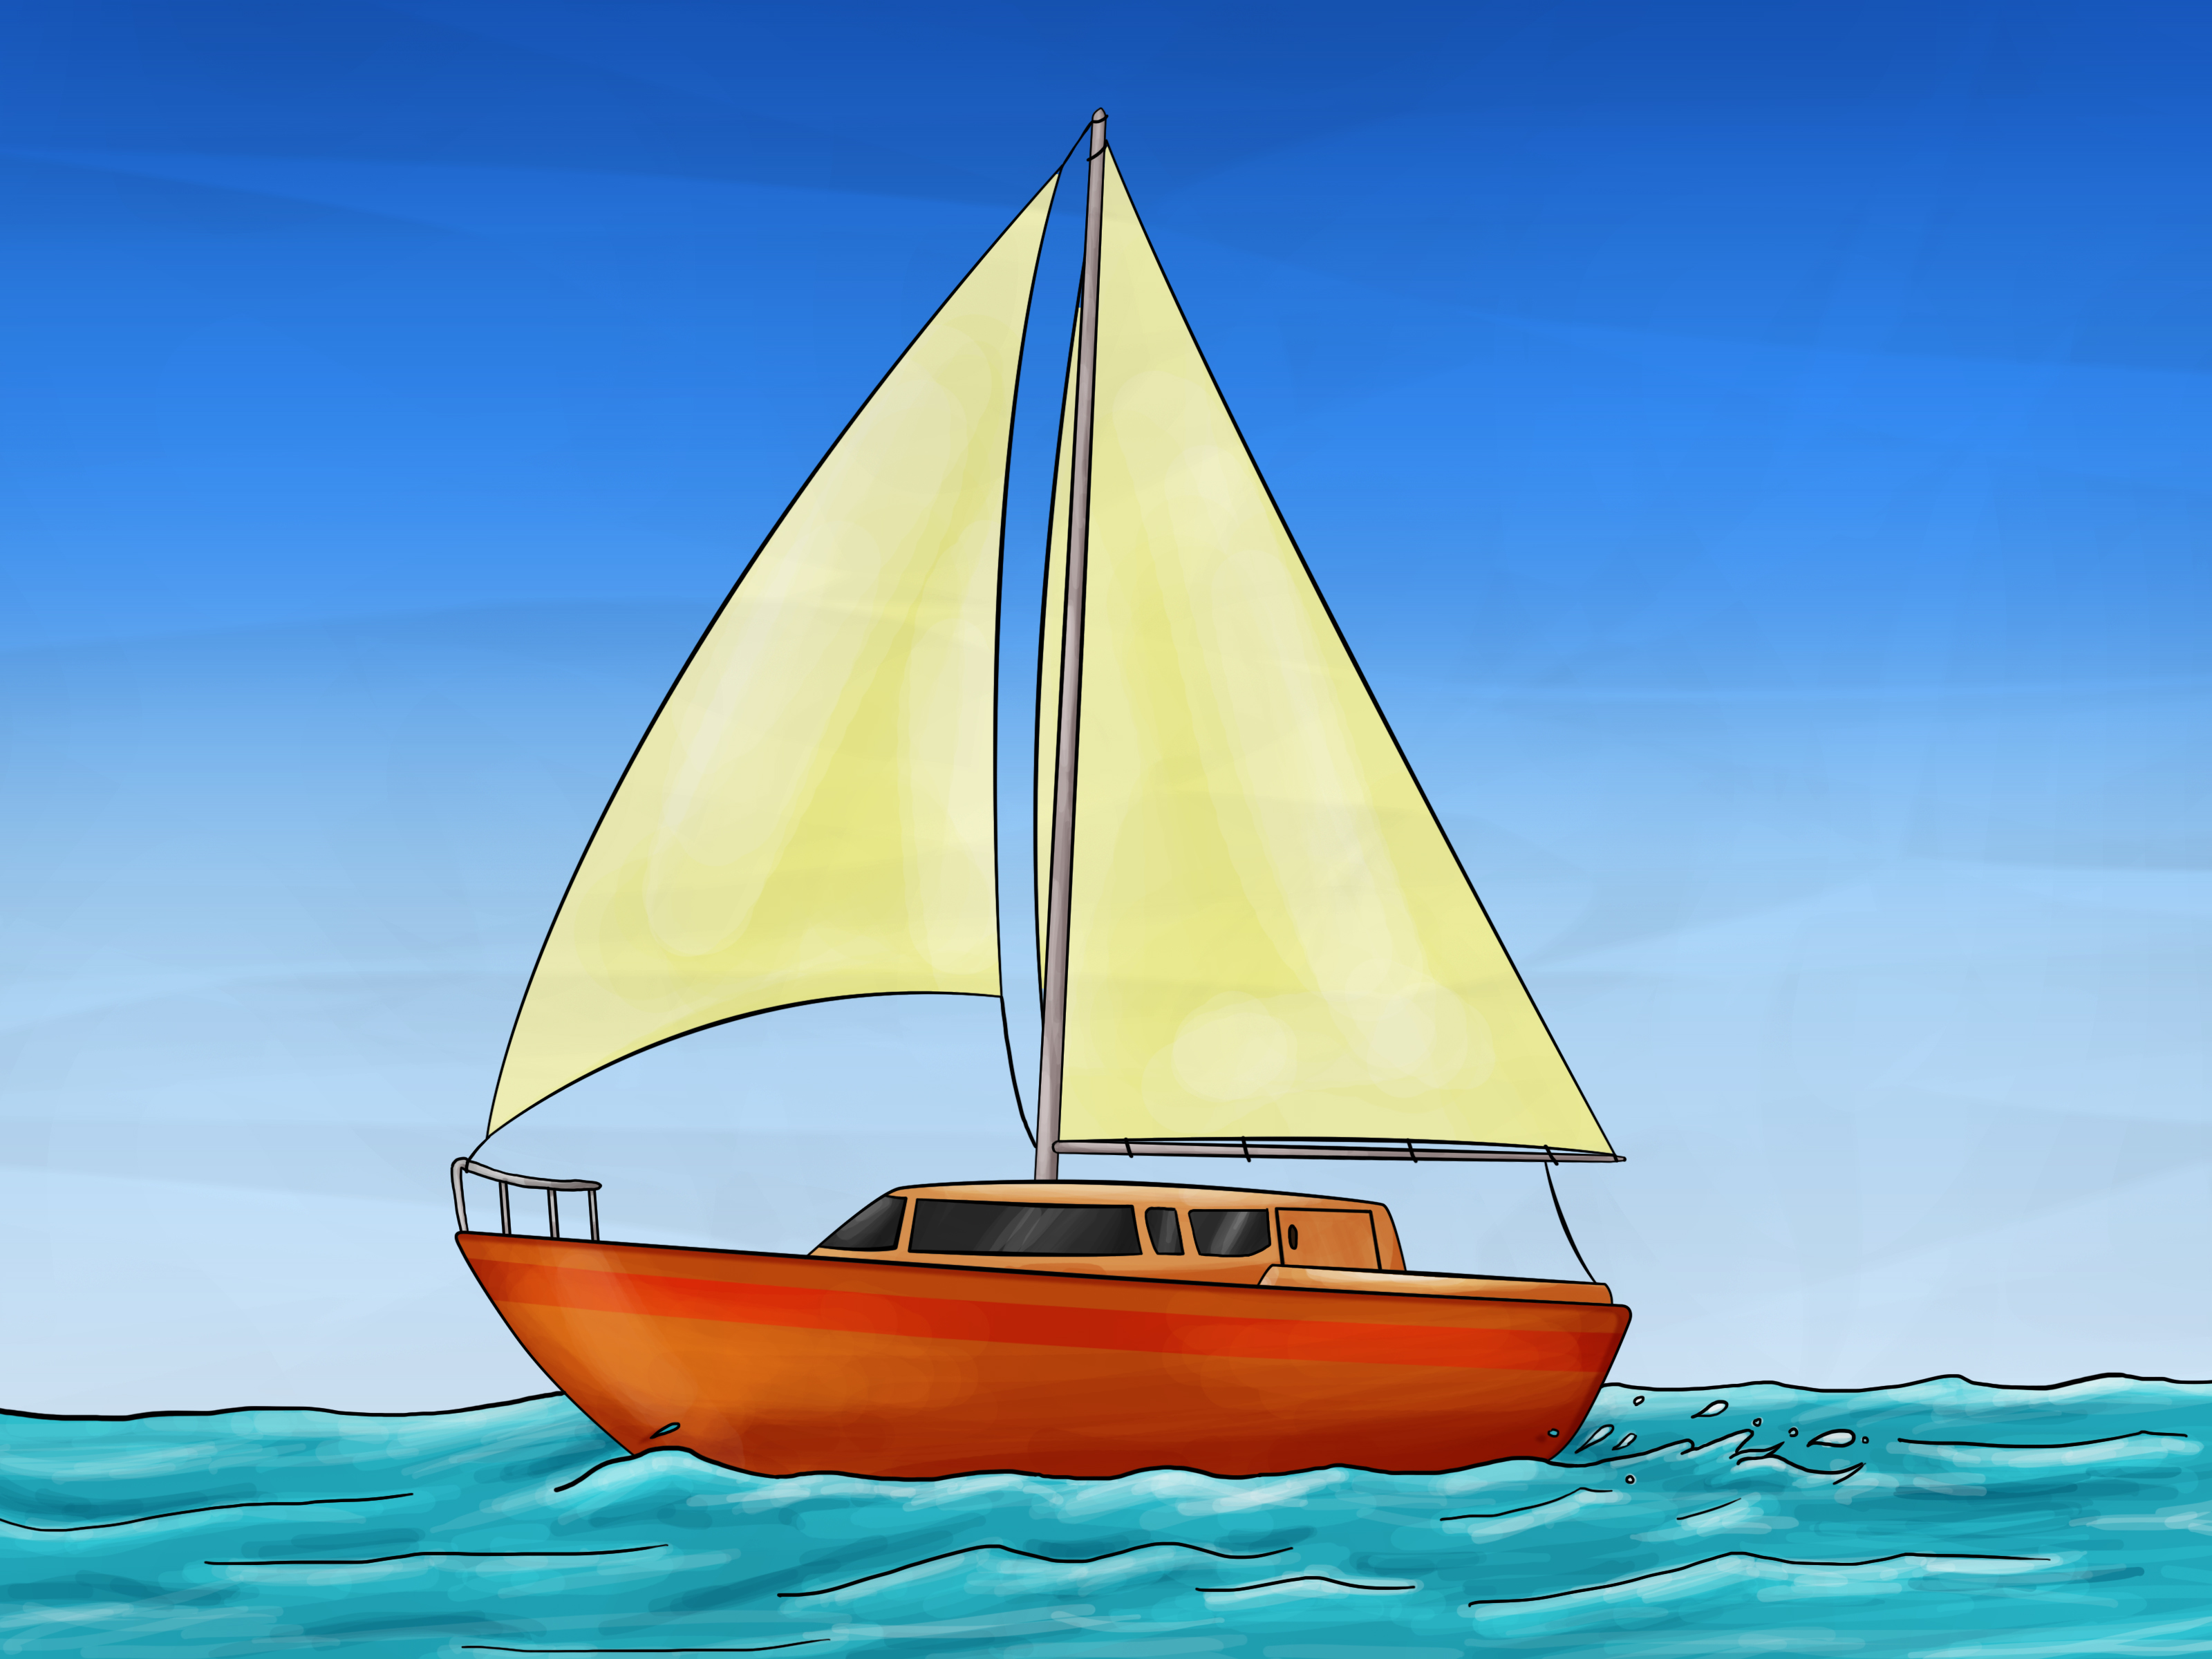 Drawn sailing boat Pictures) 7 to (with Steps